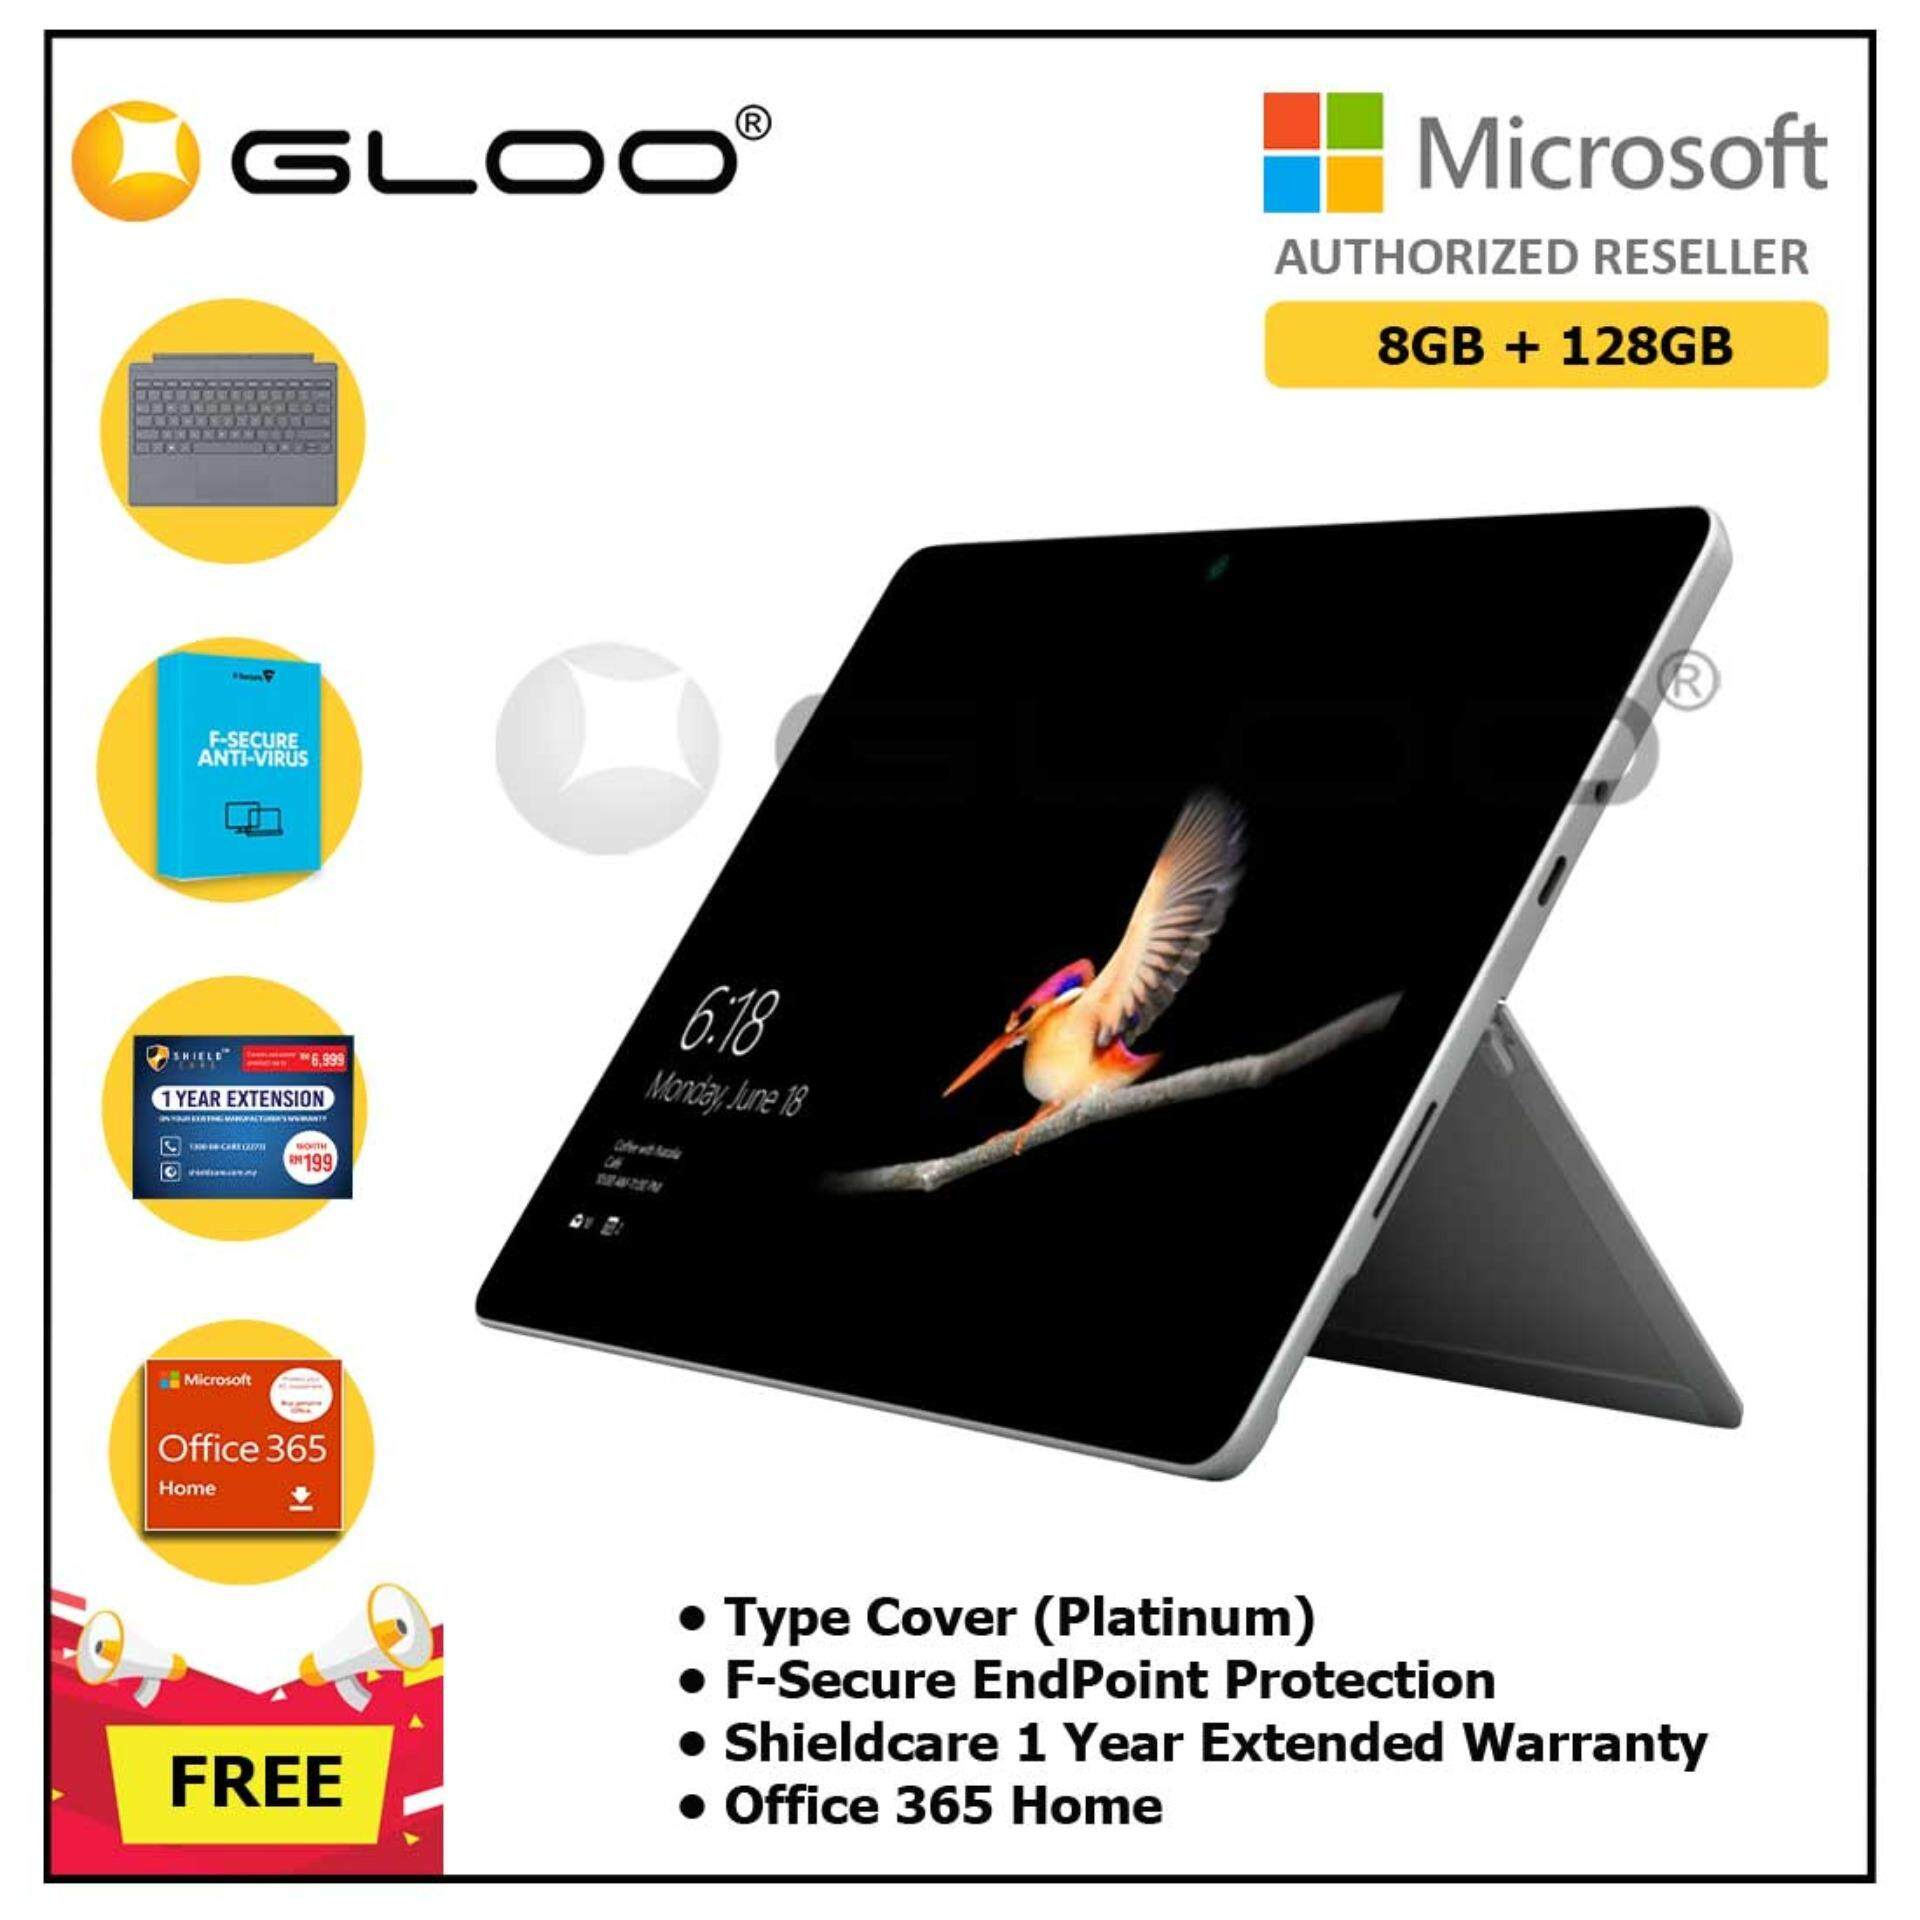 Surface Go Y/8GB 128GB + Surface Go Type Cover Platinum + Shieldcare 1 Year Extended Warranty + F-Secure EndPoint Protection + Office 365 Home ESD